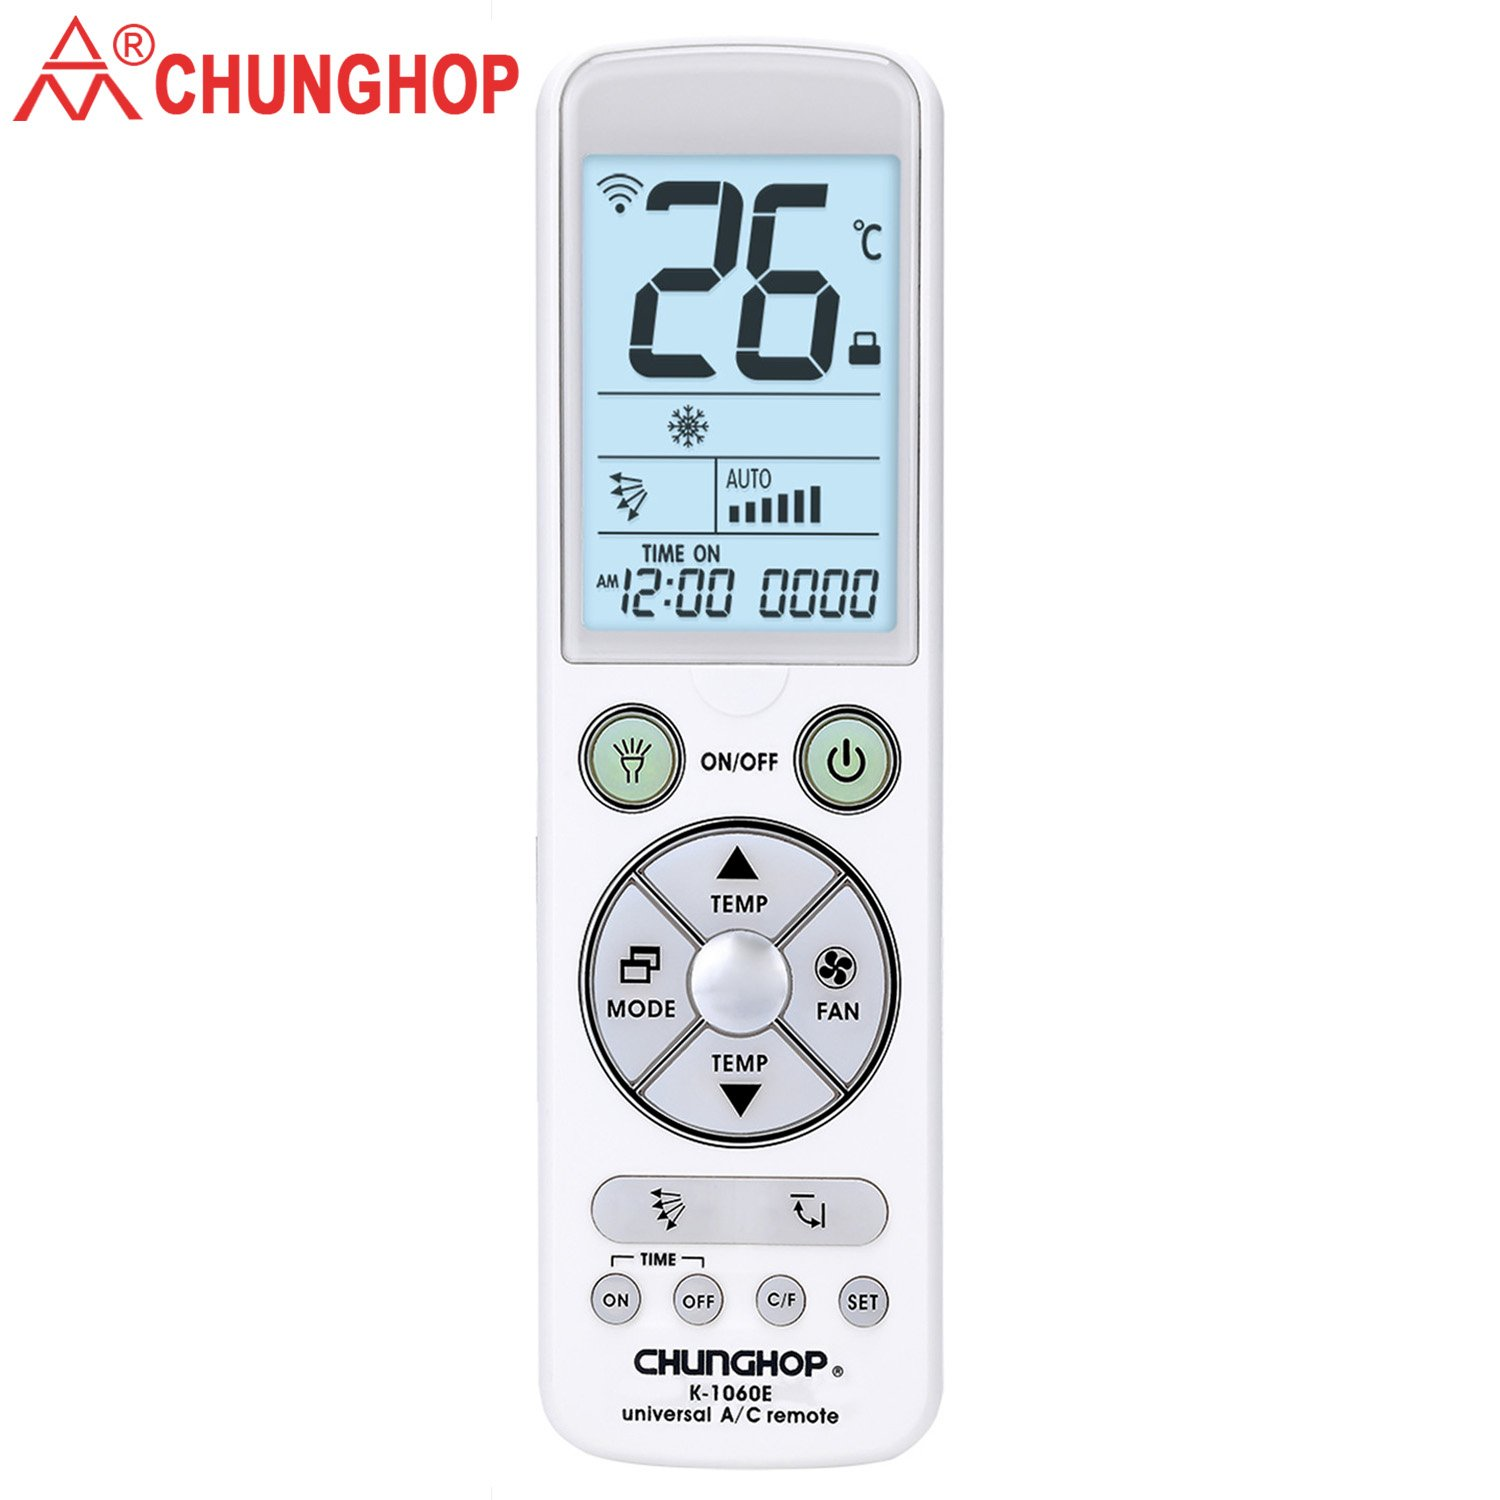 Chunghop Universal Remote for Air Conditioner Control with Back Light Big Monitor Air Conditioning Controller K-1060e 5000Code in 1 for LG, Samsung, Fujitsu, Daewoo, Gree, Carrier, Panasonic AC etc.